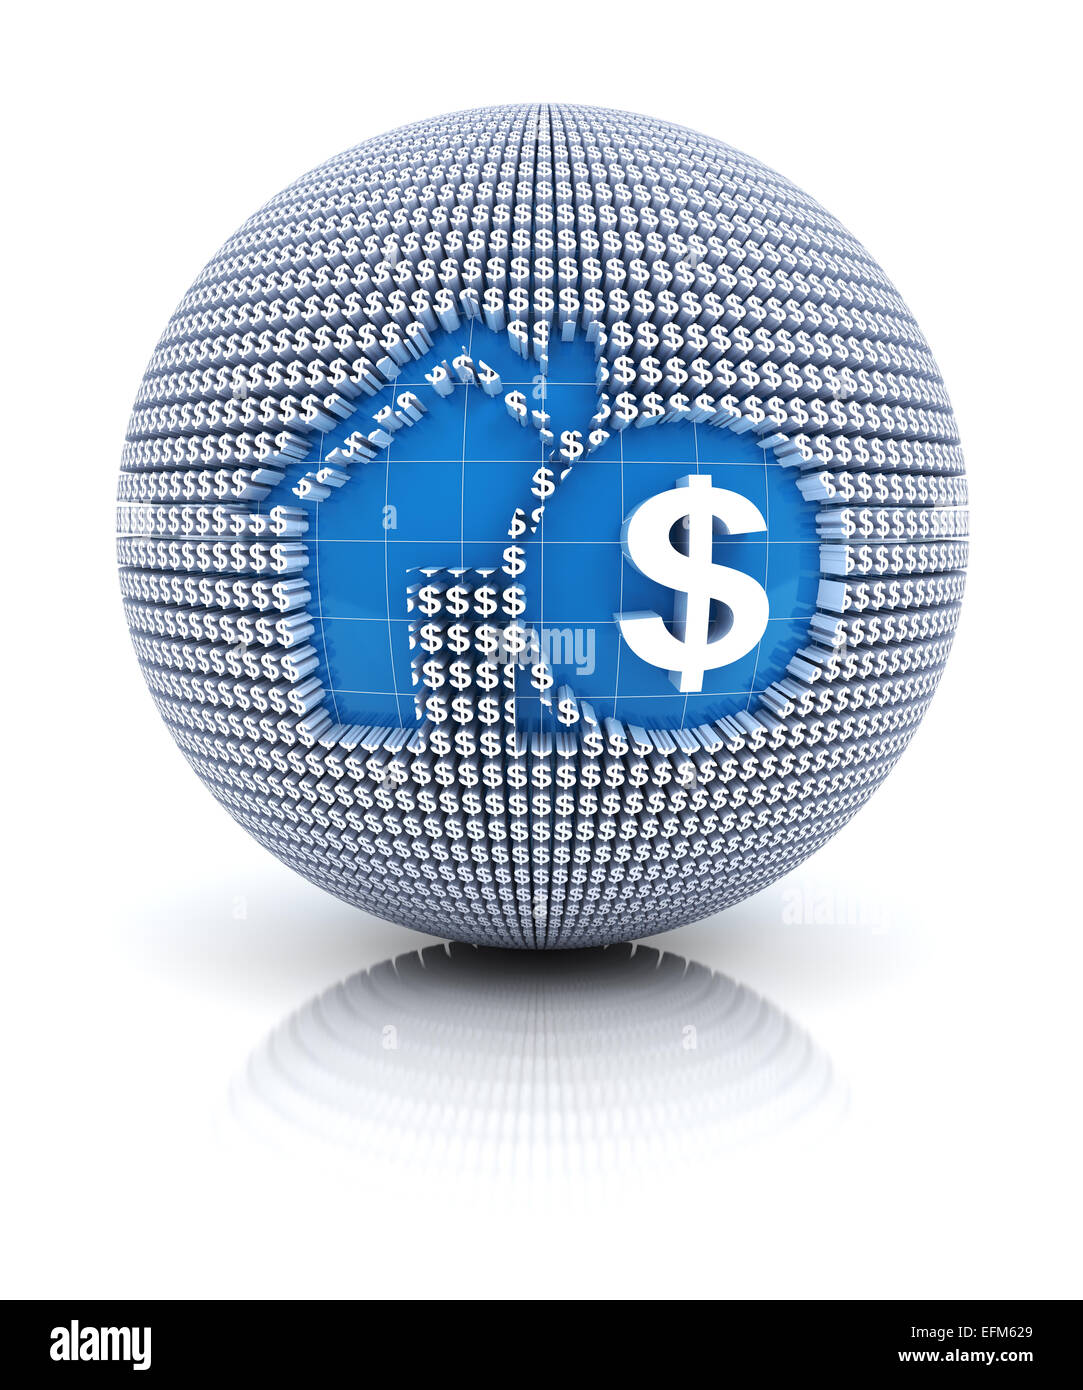 Home mortgage icon on globe formed by dollar sign, 3d render - Stock Image